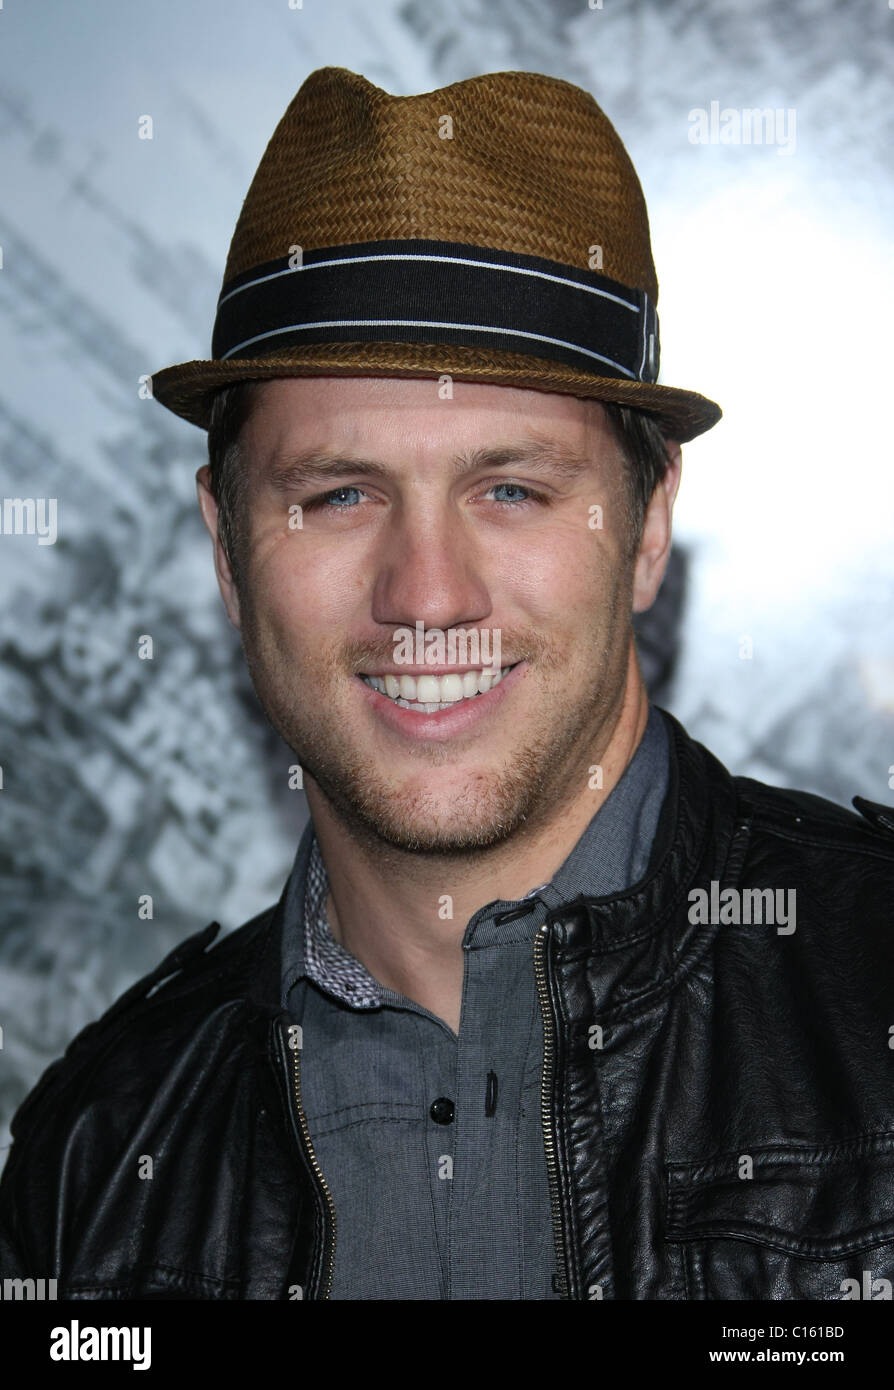 ROSS THOMAS BATTLE: LOS ANGELES FILM PREMIERE. COLUMBIA PICTURES LOS ANGELES CALIFORNIA USA 08 March 2011 - Stock Image